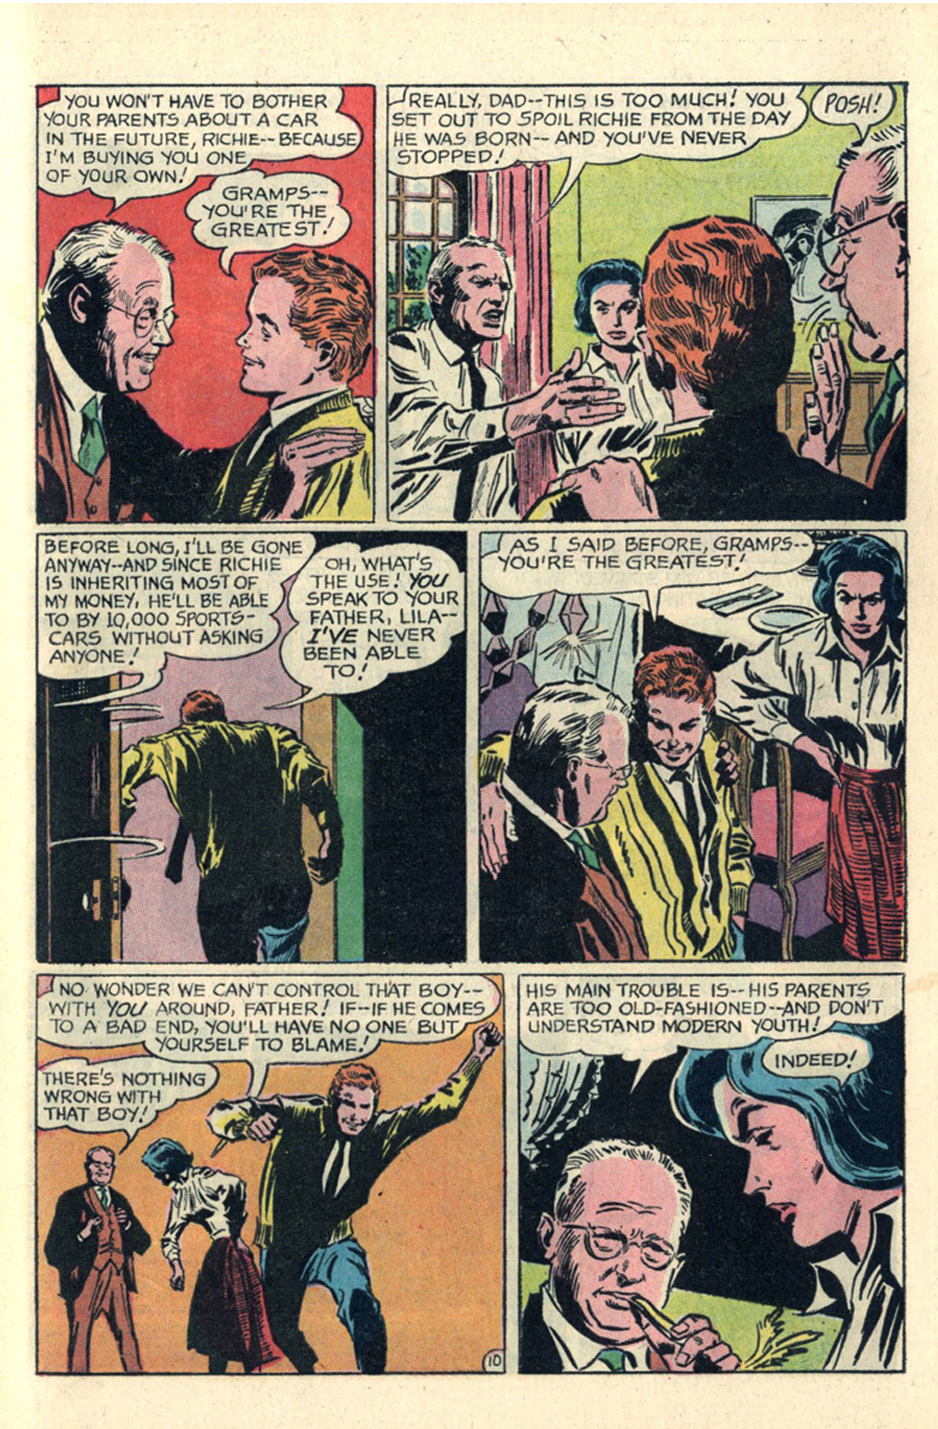 Secret Hearts Reach for Happiness Episode Gene Colan romance comic book adaptation of Peyton Place long-running soap opera